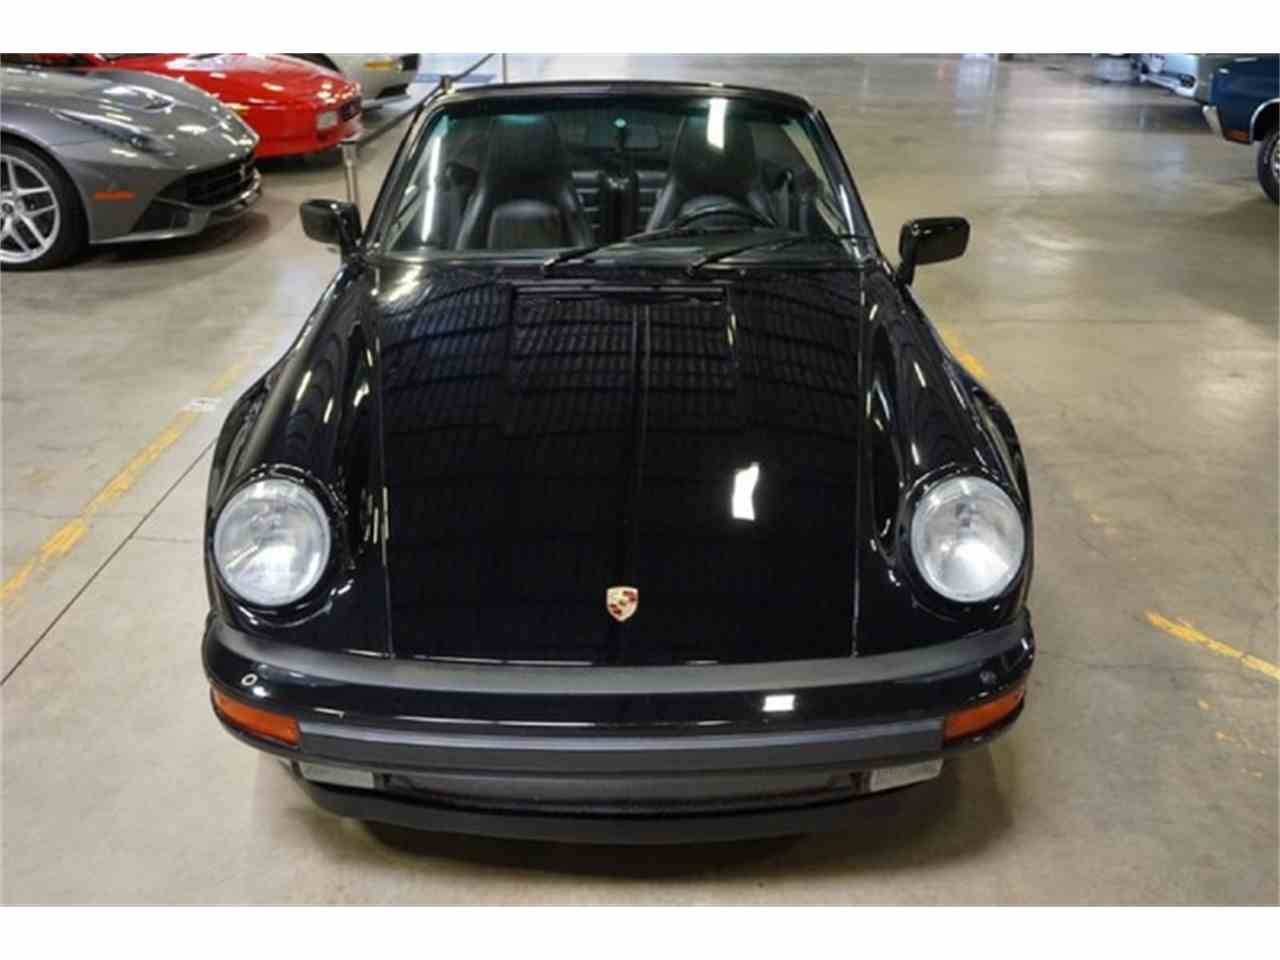 Large Picture of 1989 Porsche 911 Turbo Offered by R&H Motor Car Group - EVKF